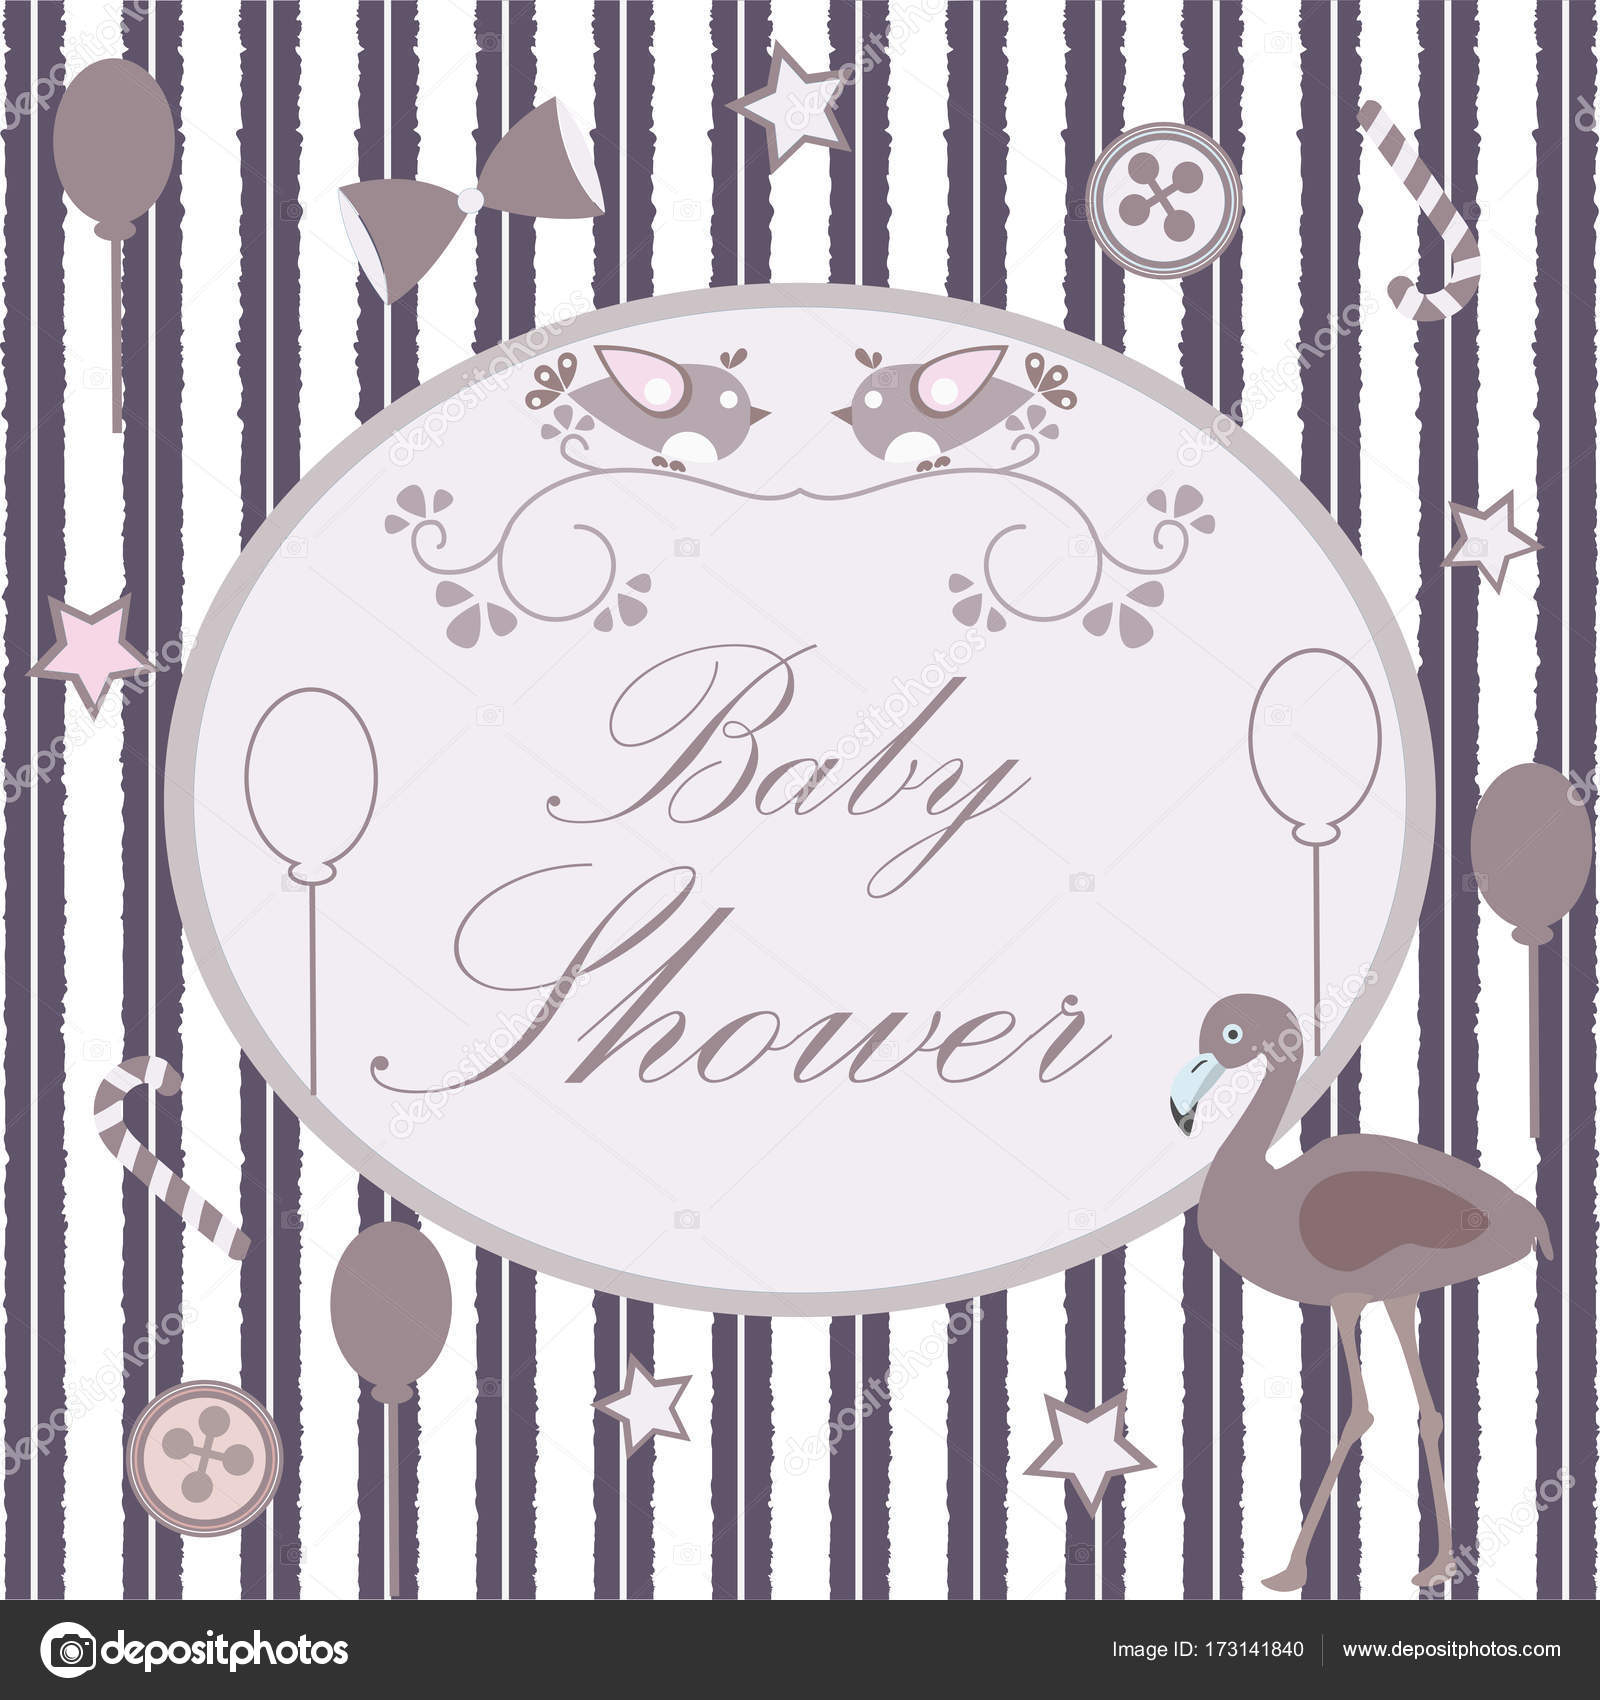 Fabulous Baby Shower Congratulations Card — Stock Vector © Crystal_Ray #173141840 pertaining to Baby Shower Congratulations